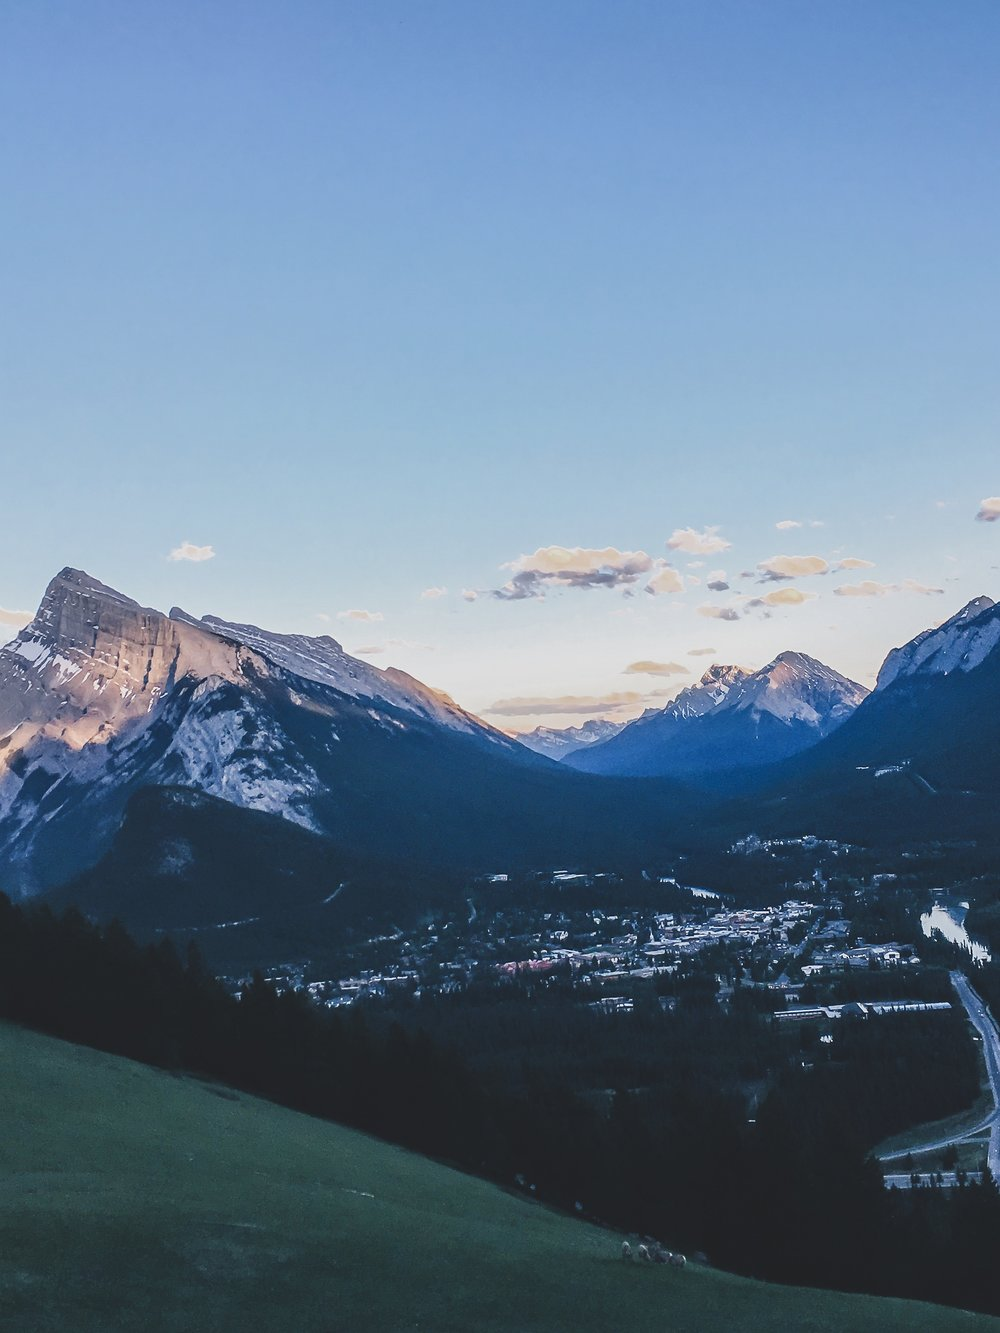 Viewpoint at Mt. Norquay